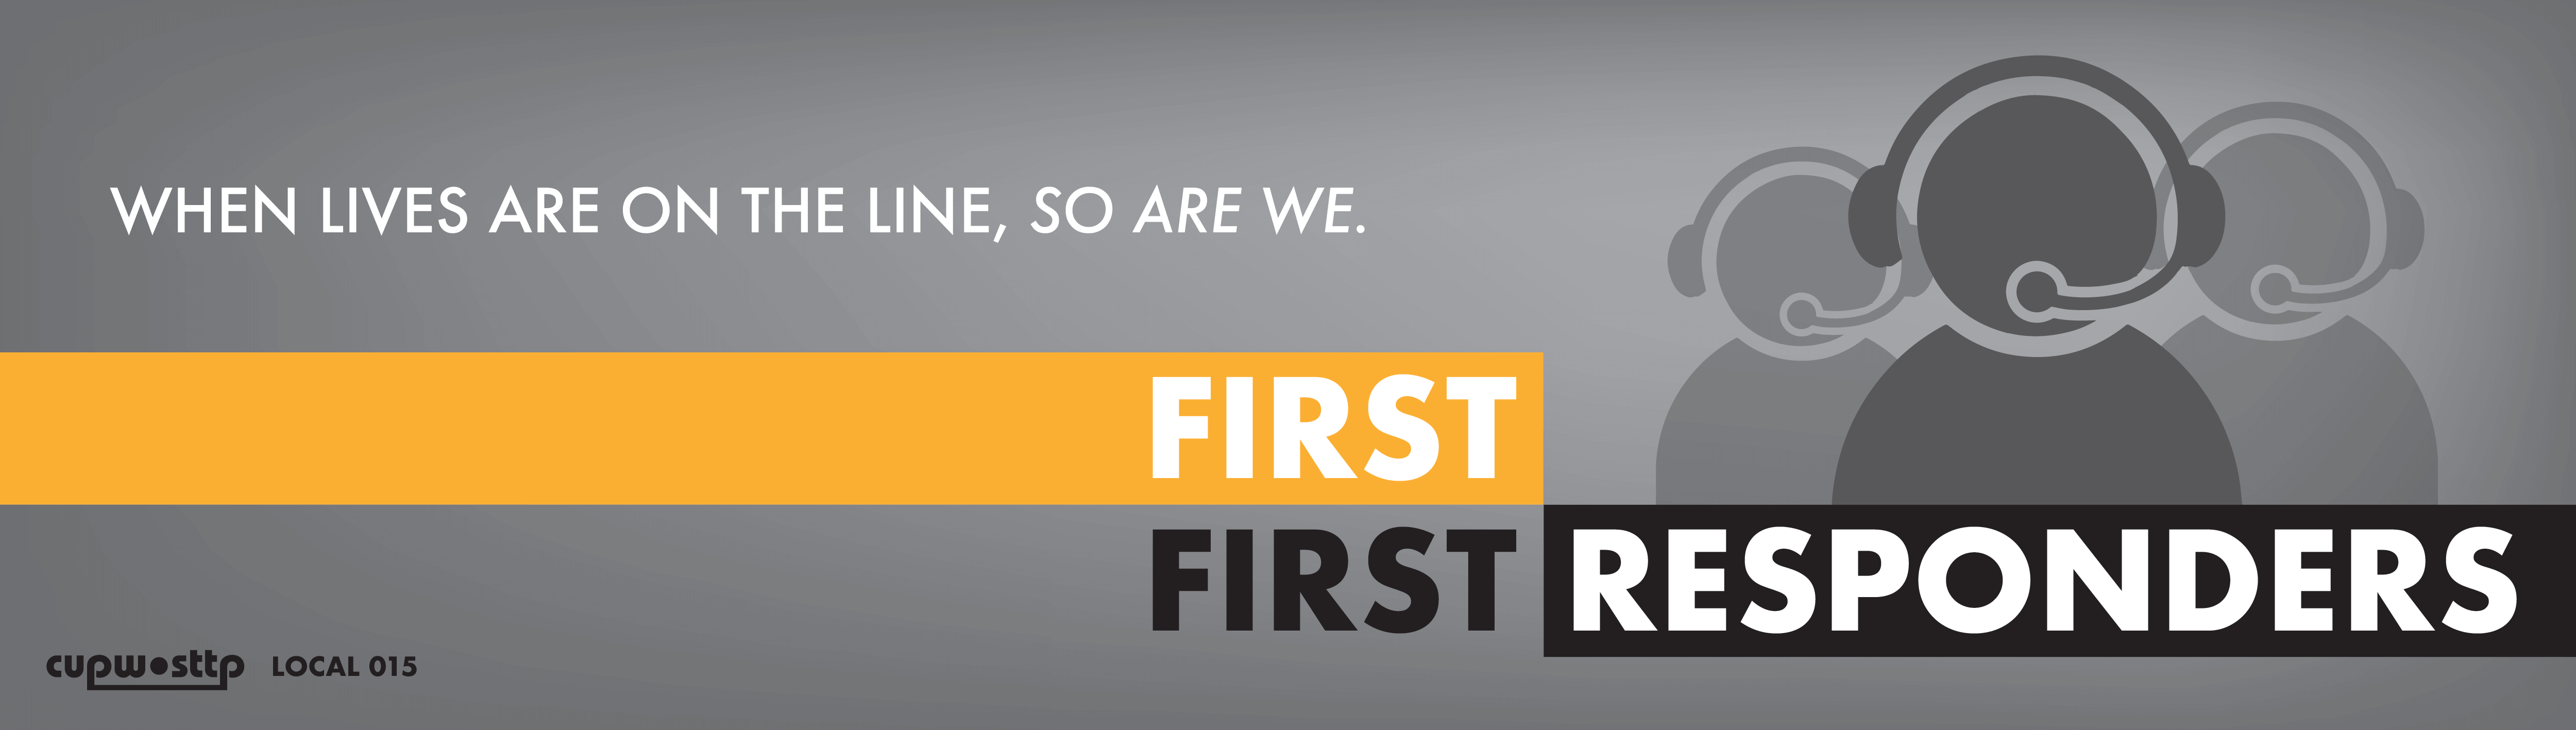 First First Responders - When lives are on the line, so are we.